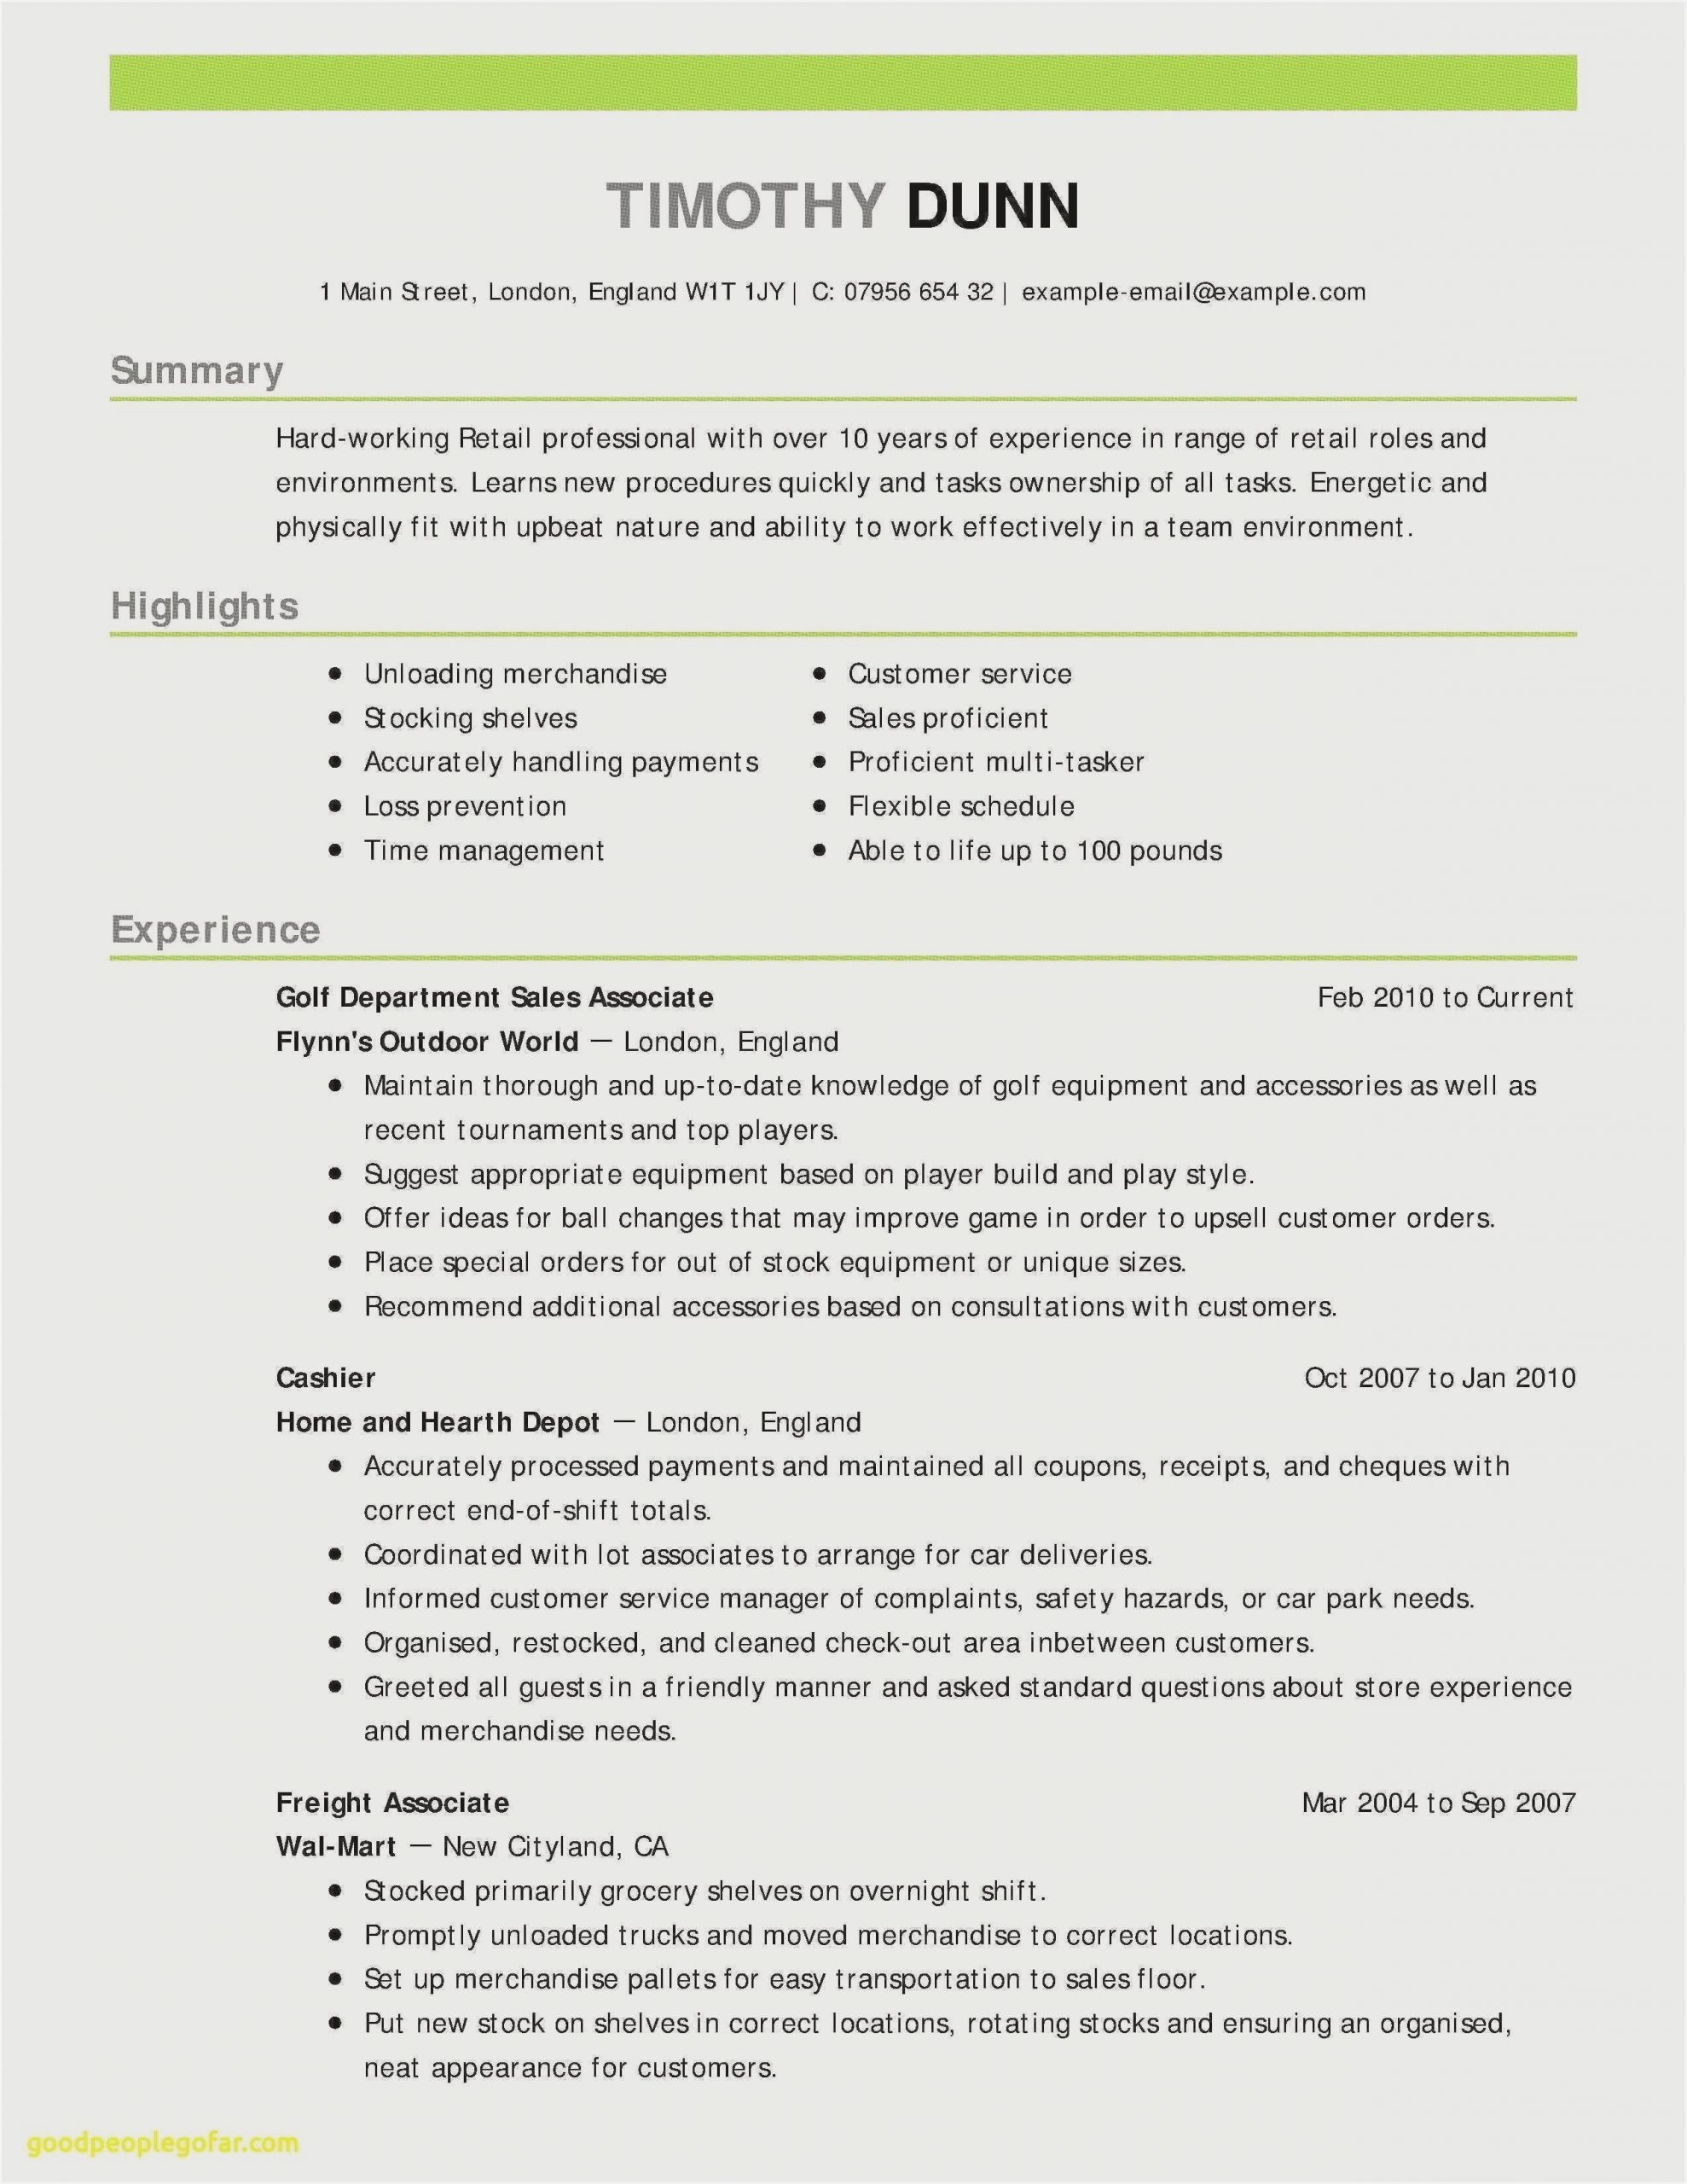 resume cv format and sample calendar uncategorized basic examples tremendous photo ideas Resume Simple Resume Format Examples